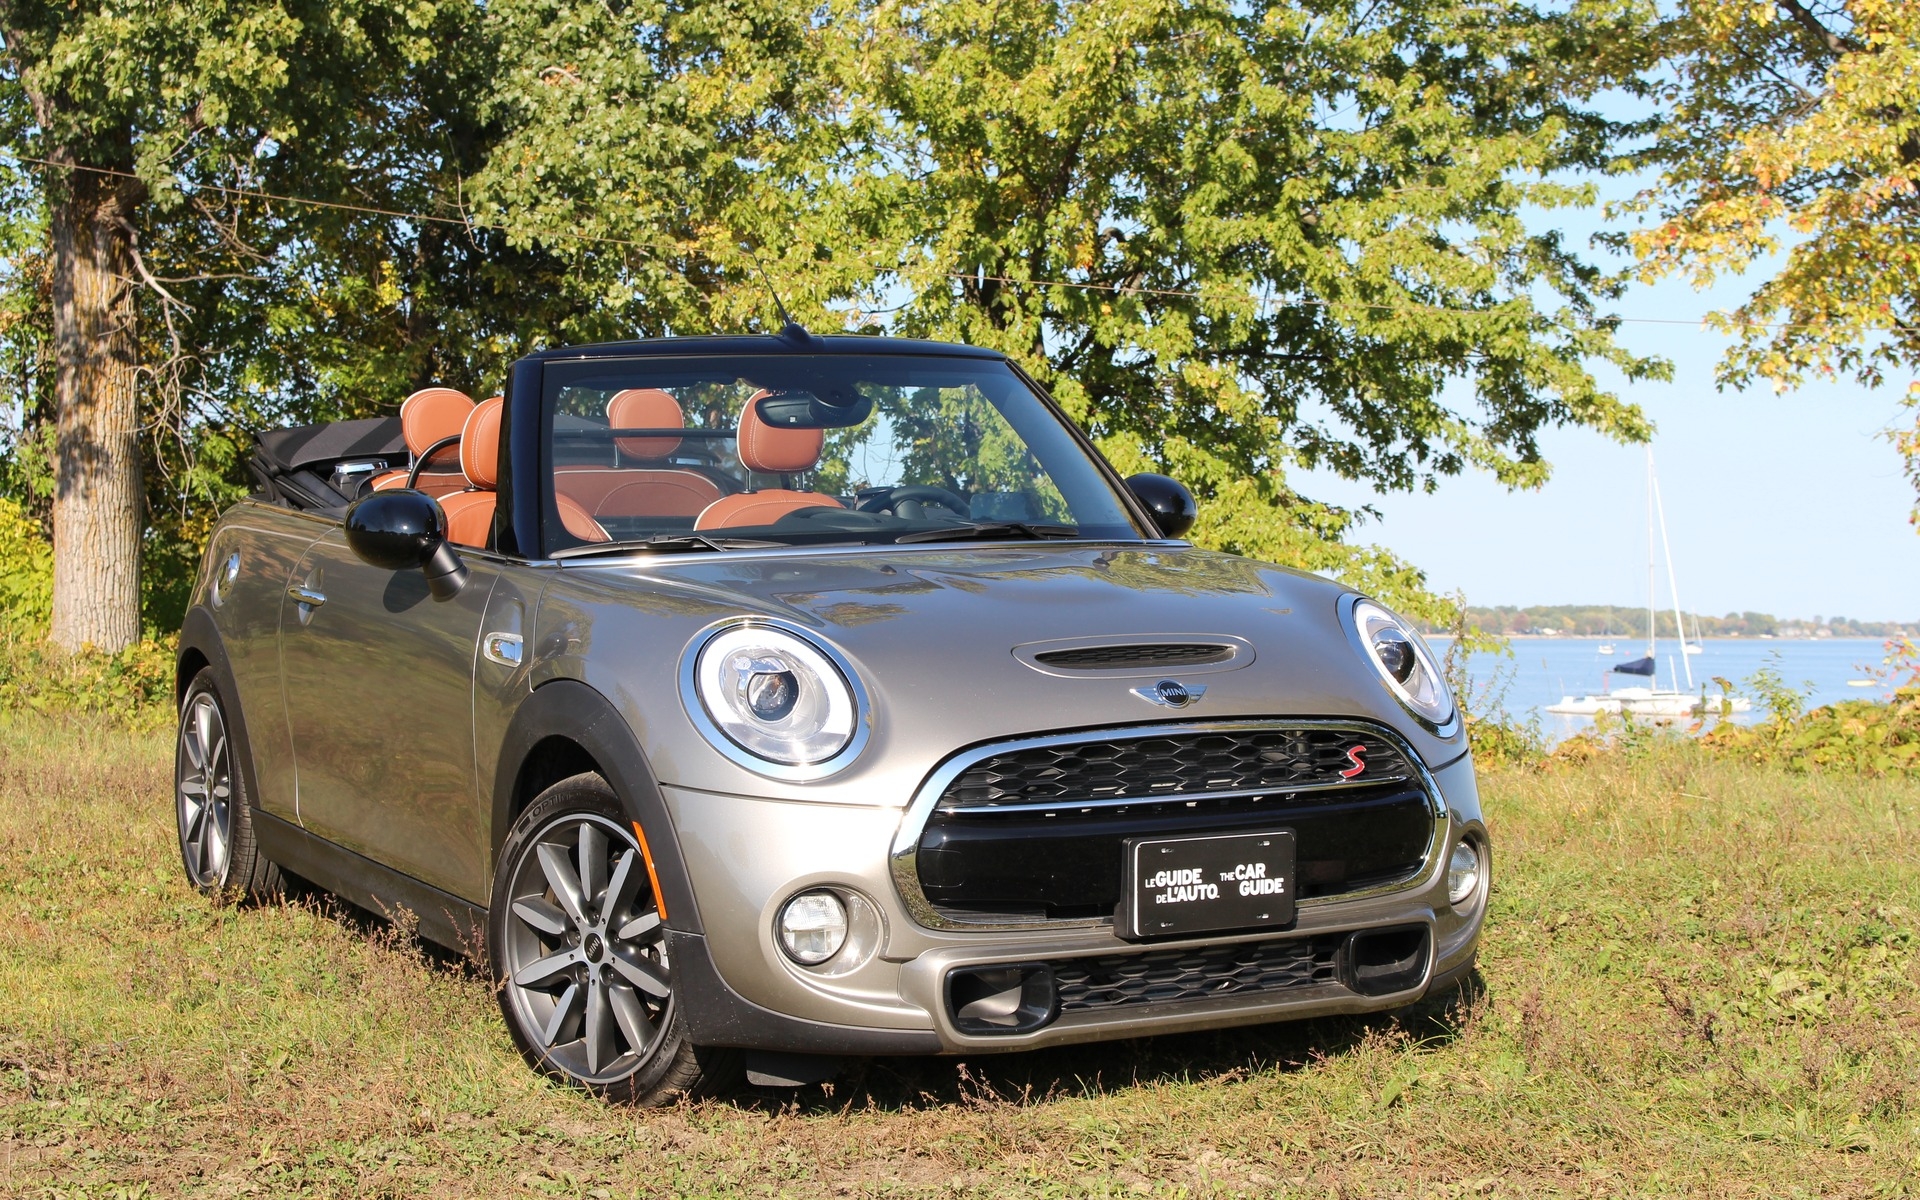 2016 Mini Cooper S Convertible Another Reason To Hate Winter 125